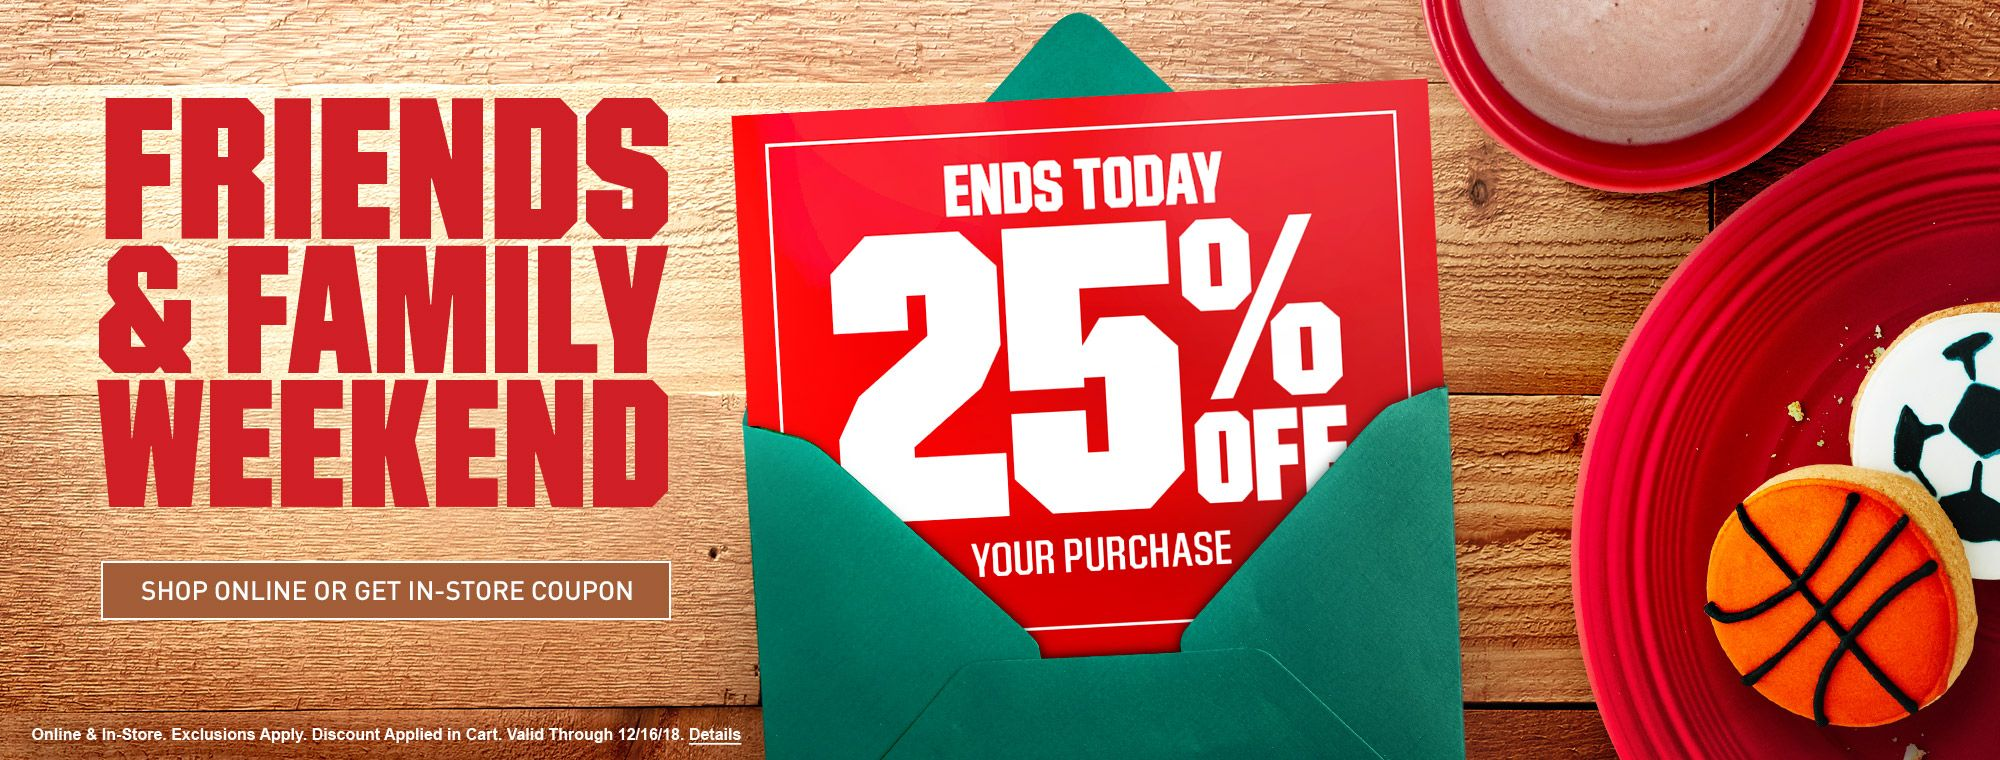 2 Days Only - 25% Off Your Purchase